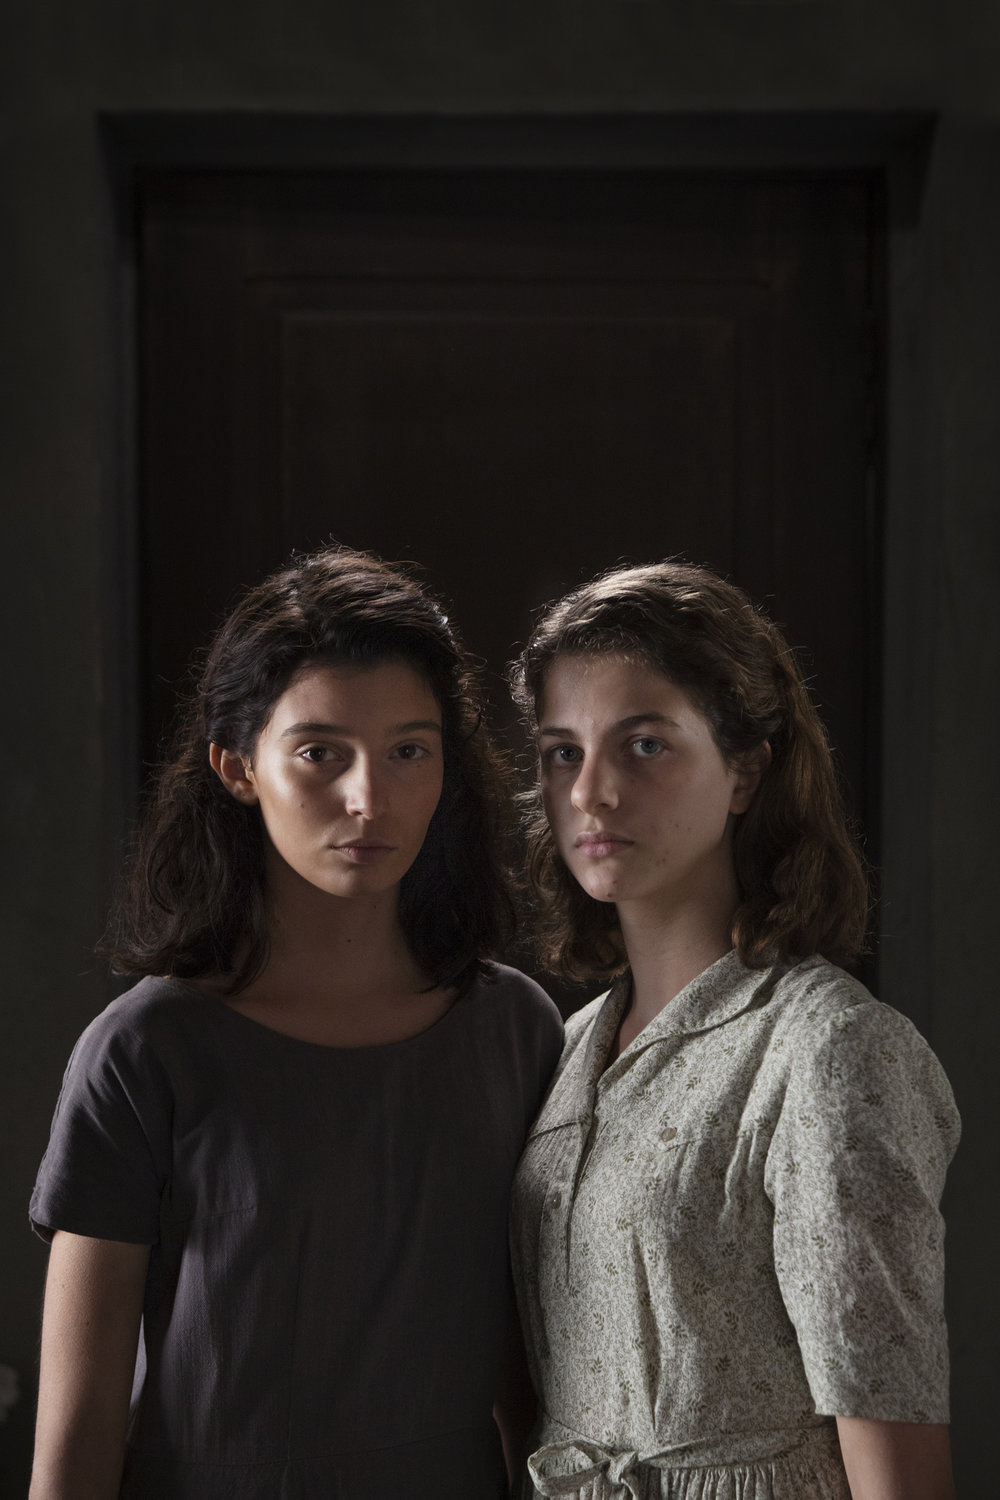 (LEFT) Gaia Girace as Lila. (RIGHT) Margherita Mazzucco as Elena. EDUARDO CASTALDO - HBO.jpg